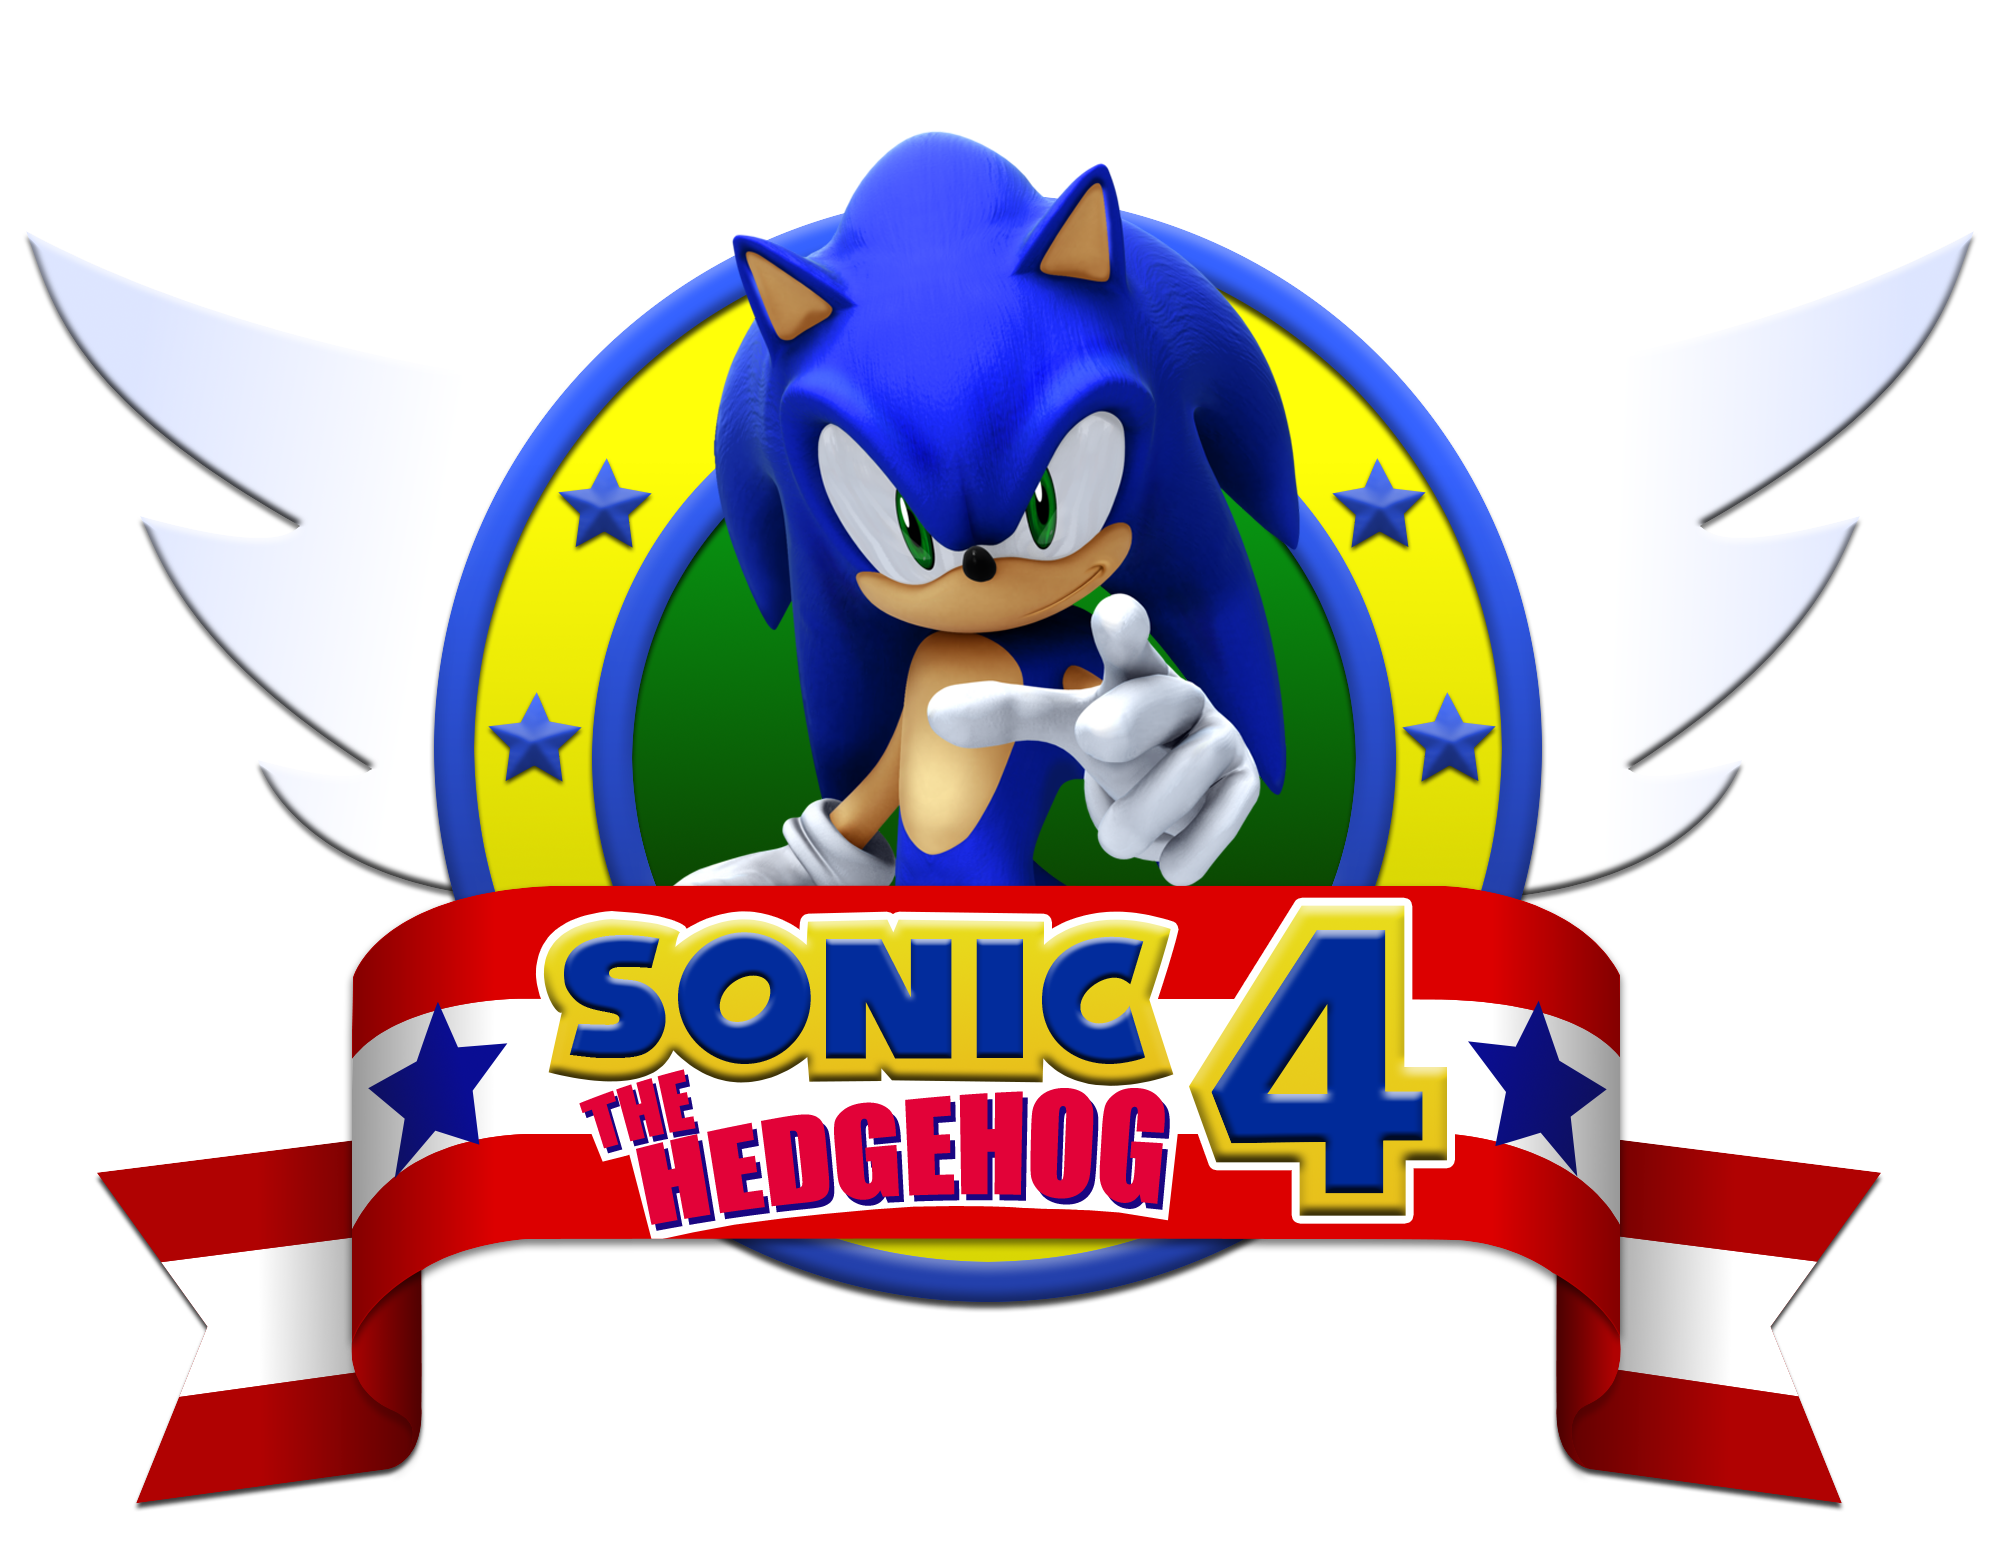 Sonic 4 png. The hedgehog episode coming